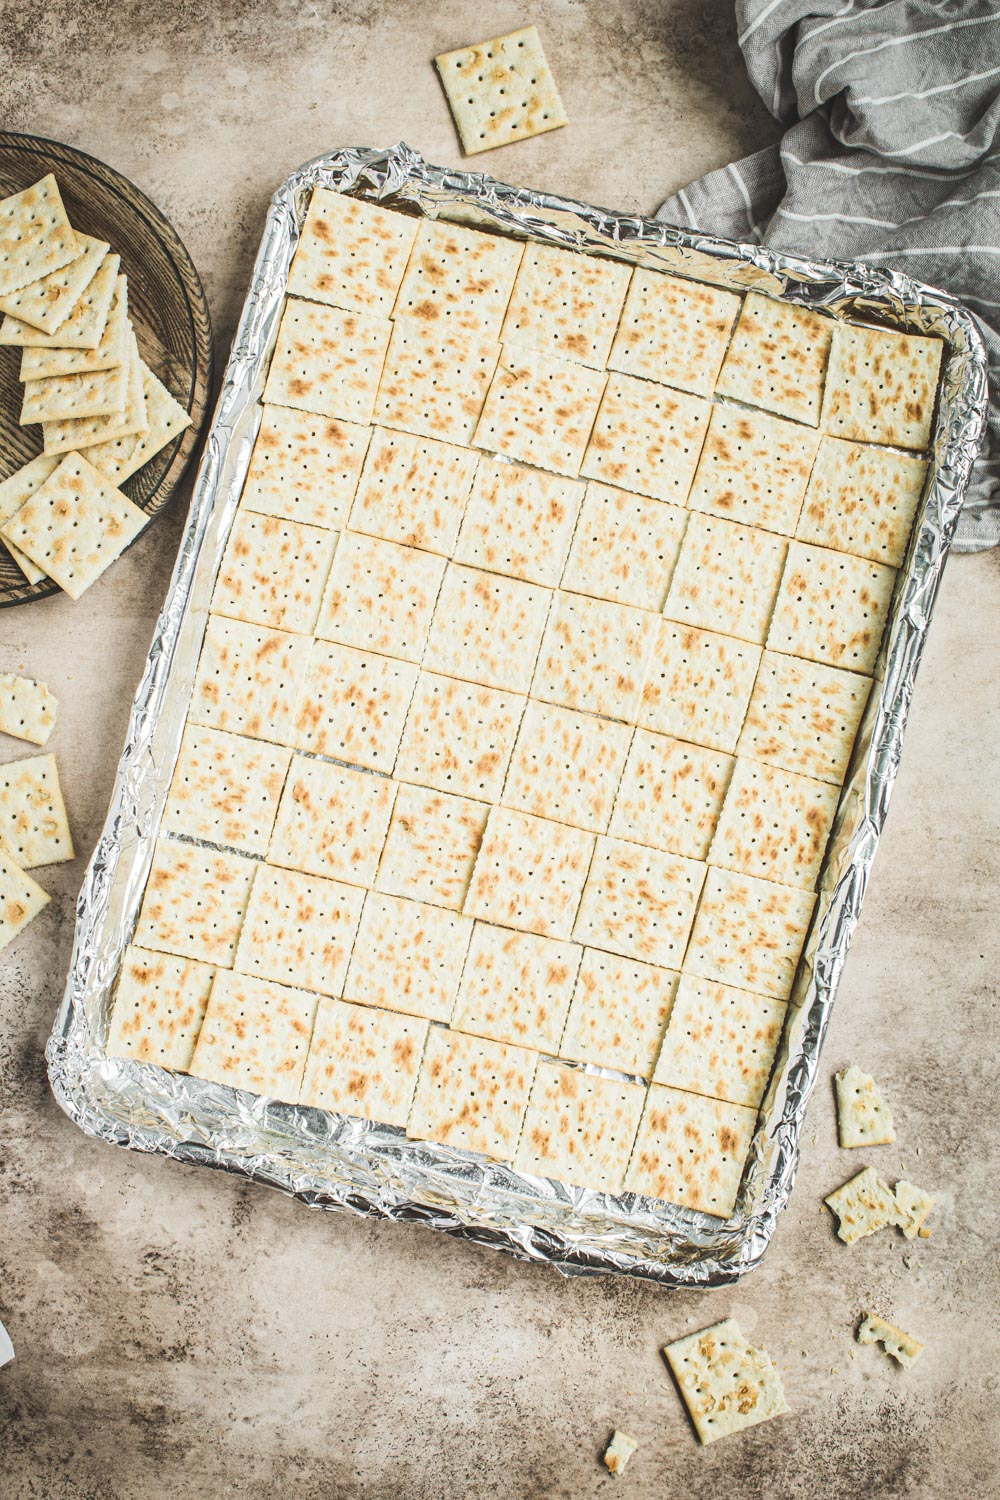 Saltines laid out on a foil-lined baking sheet.